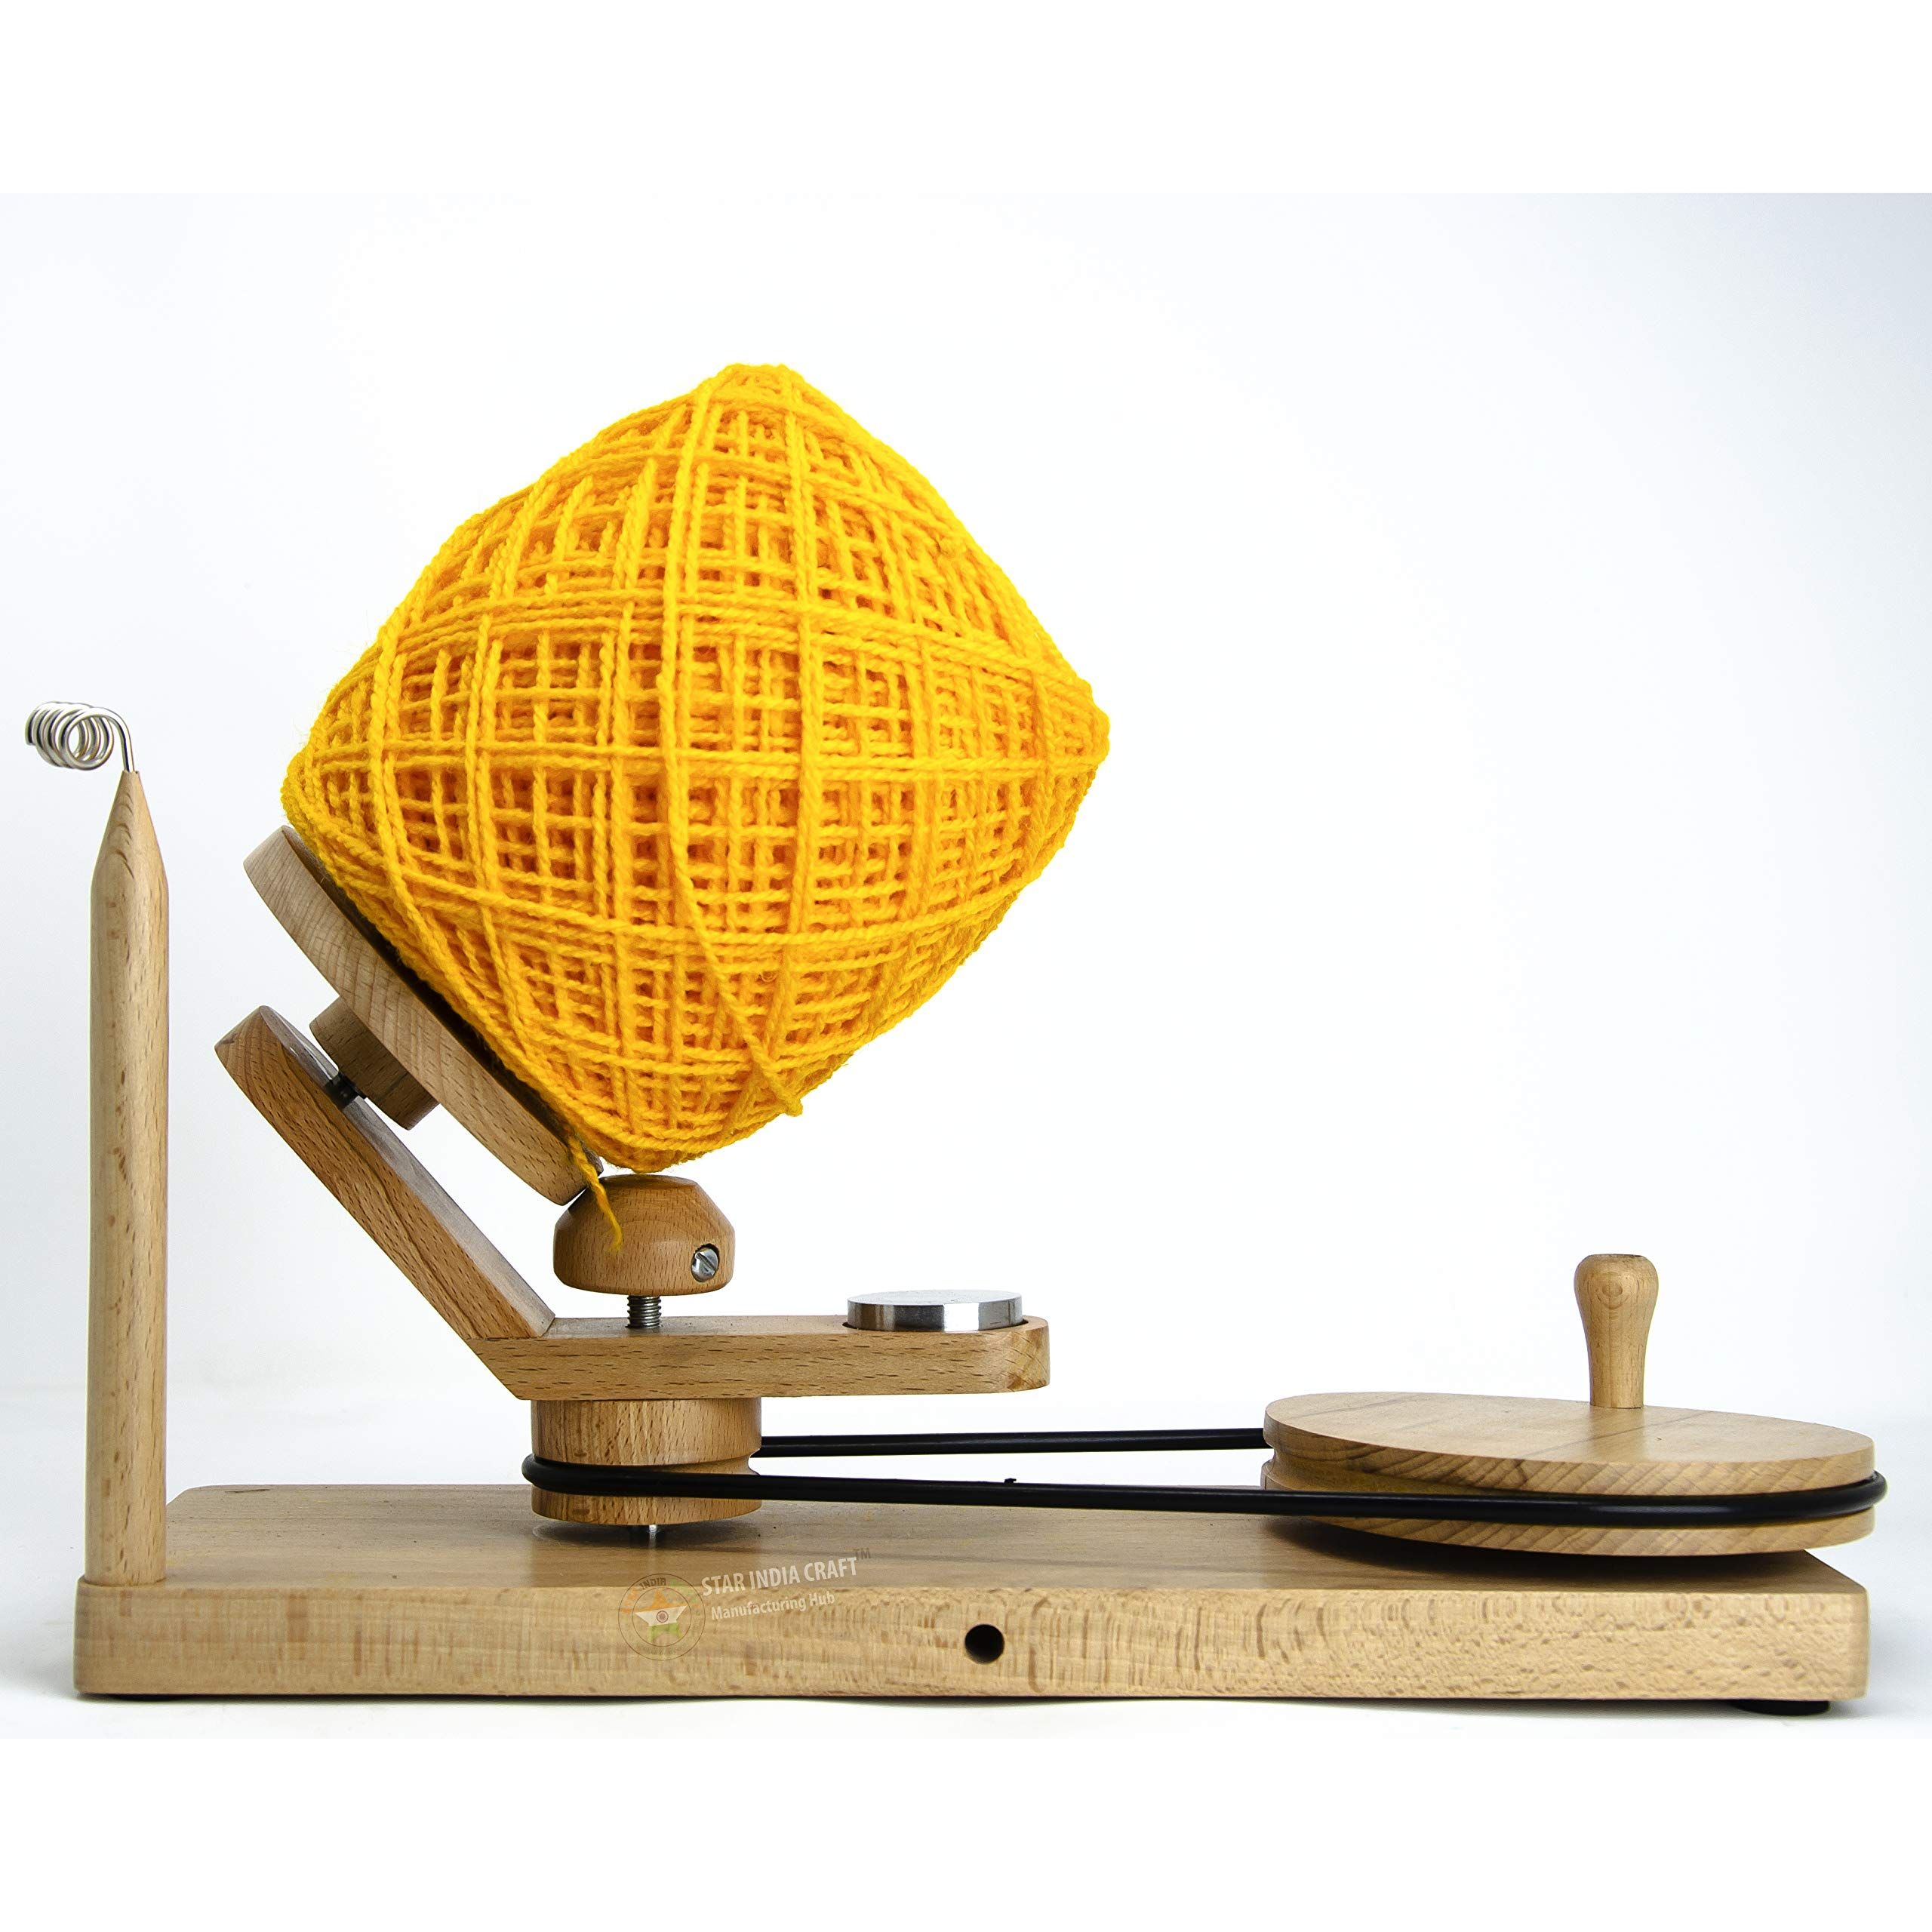 STAR INDIA CRAFT Handmade Center Pull Yarn Ball Winder - Natural Yarn Winder | Perfect DIY Knitter's Gifts for Knitting and Crocheting | Handcrafted Ball Winder (Yarn Winder, Standard) by STAR INDIA CRAFT (Image #9)